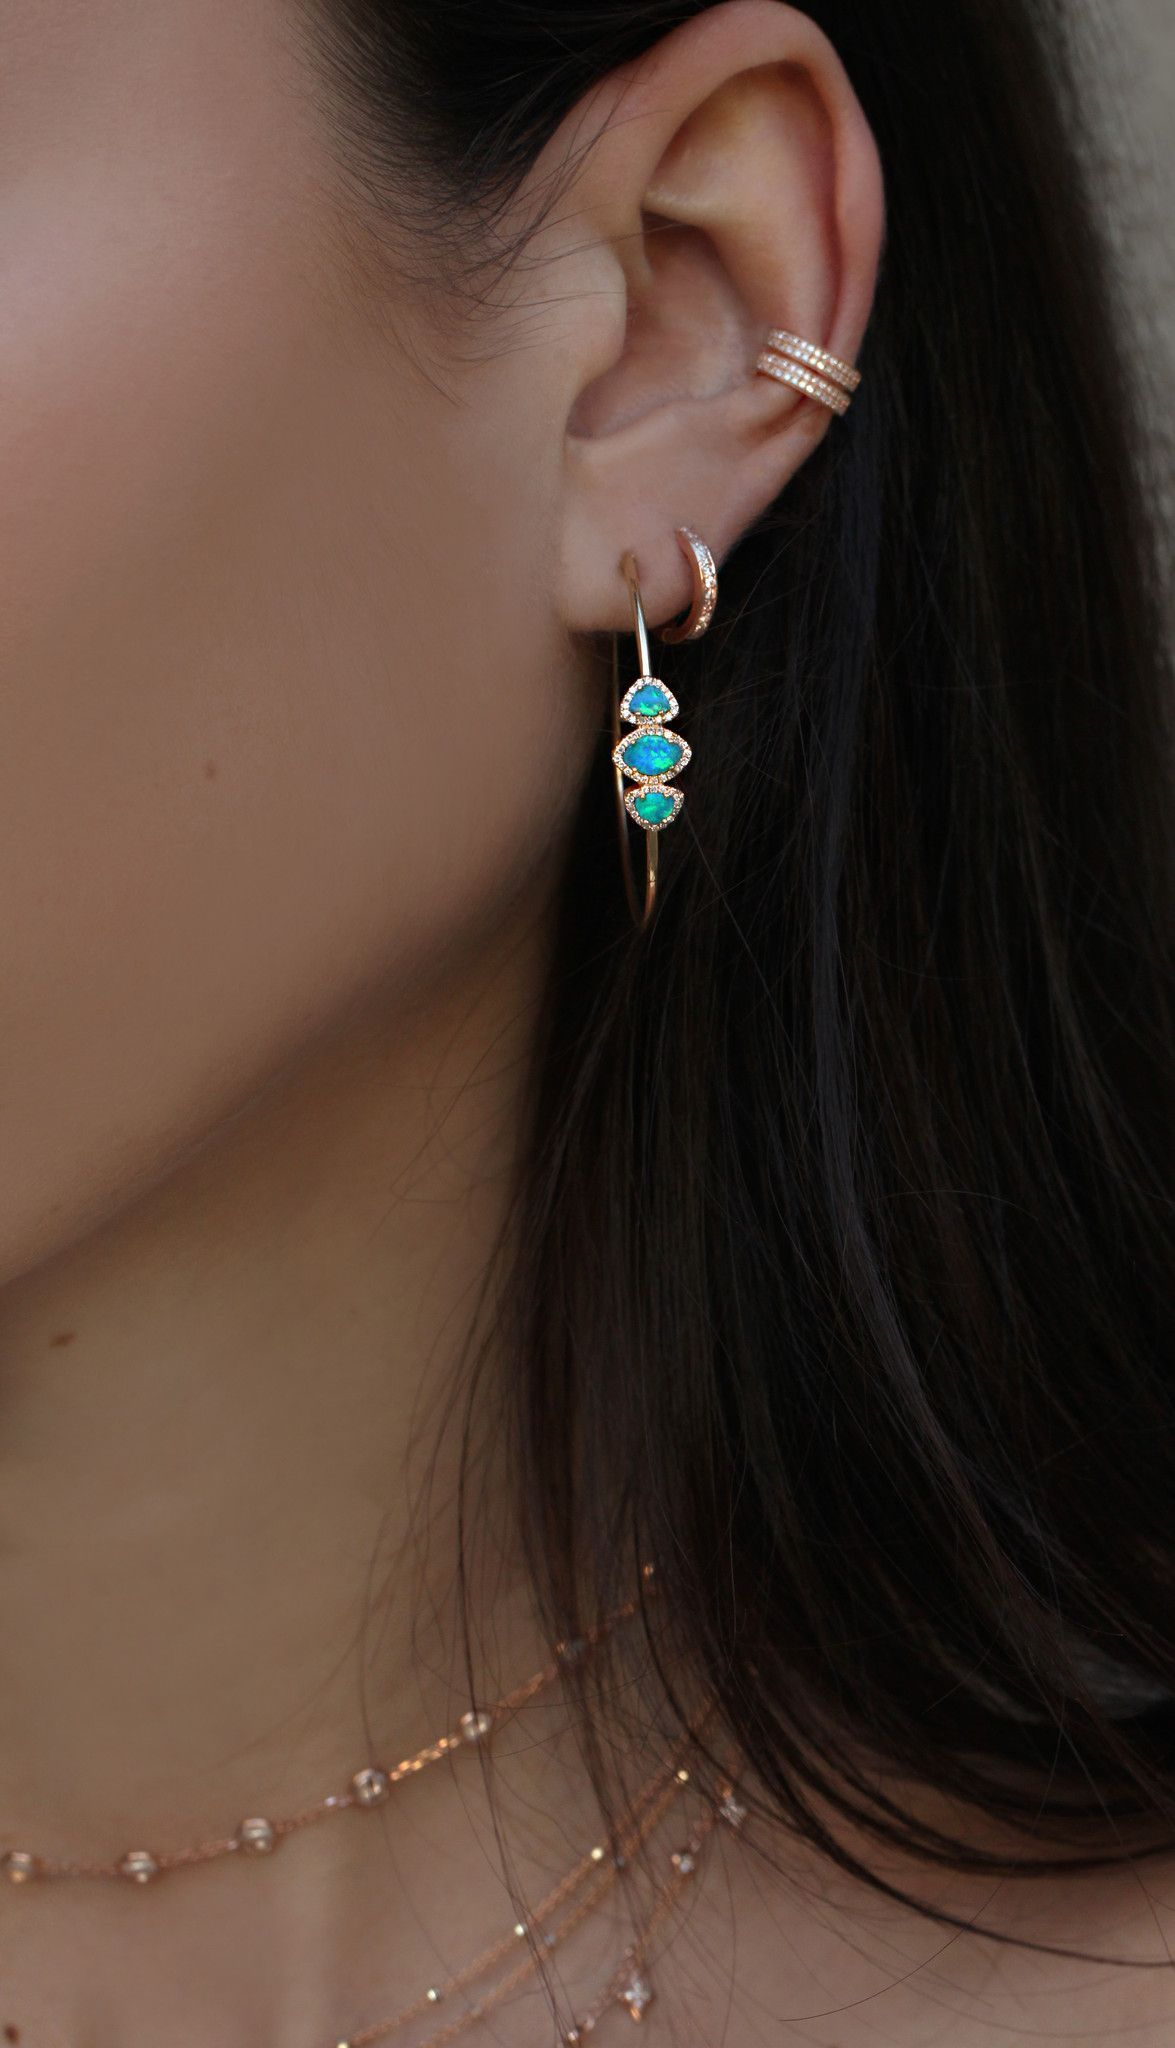 14kt Gold And Diamond Opal Hoop Earrings Total Weight 1ct 20ct Is A Stone Of Inspiration Enhancing Imagination